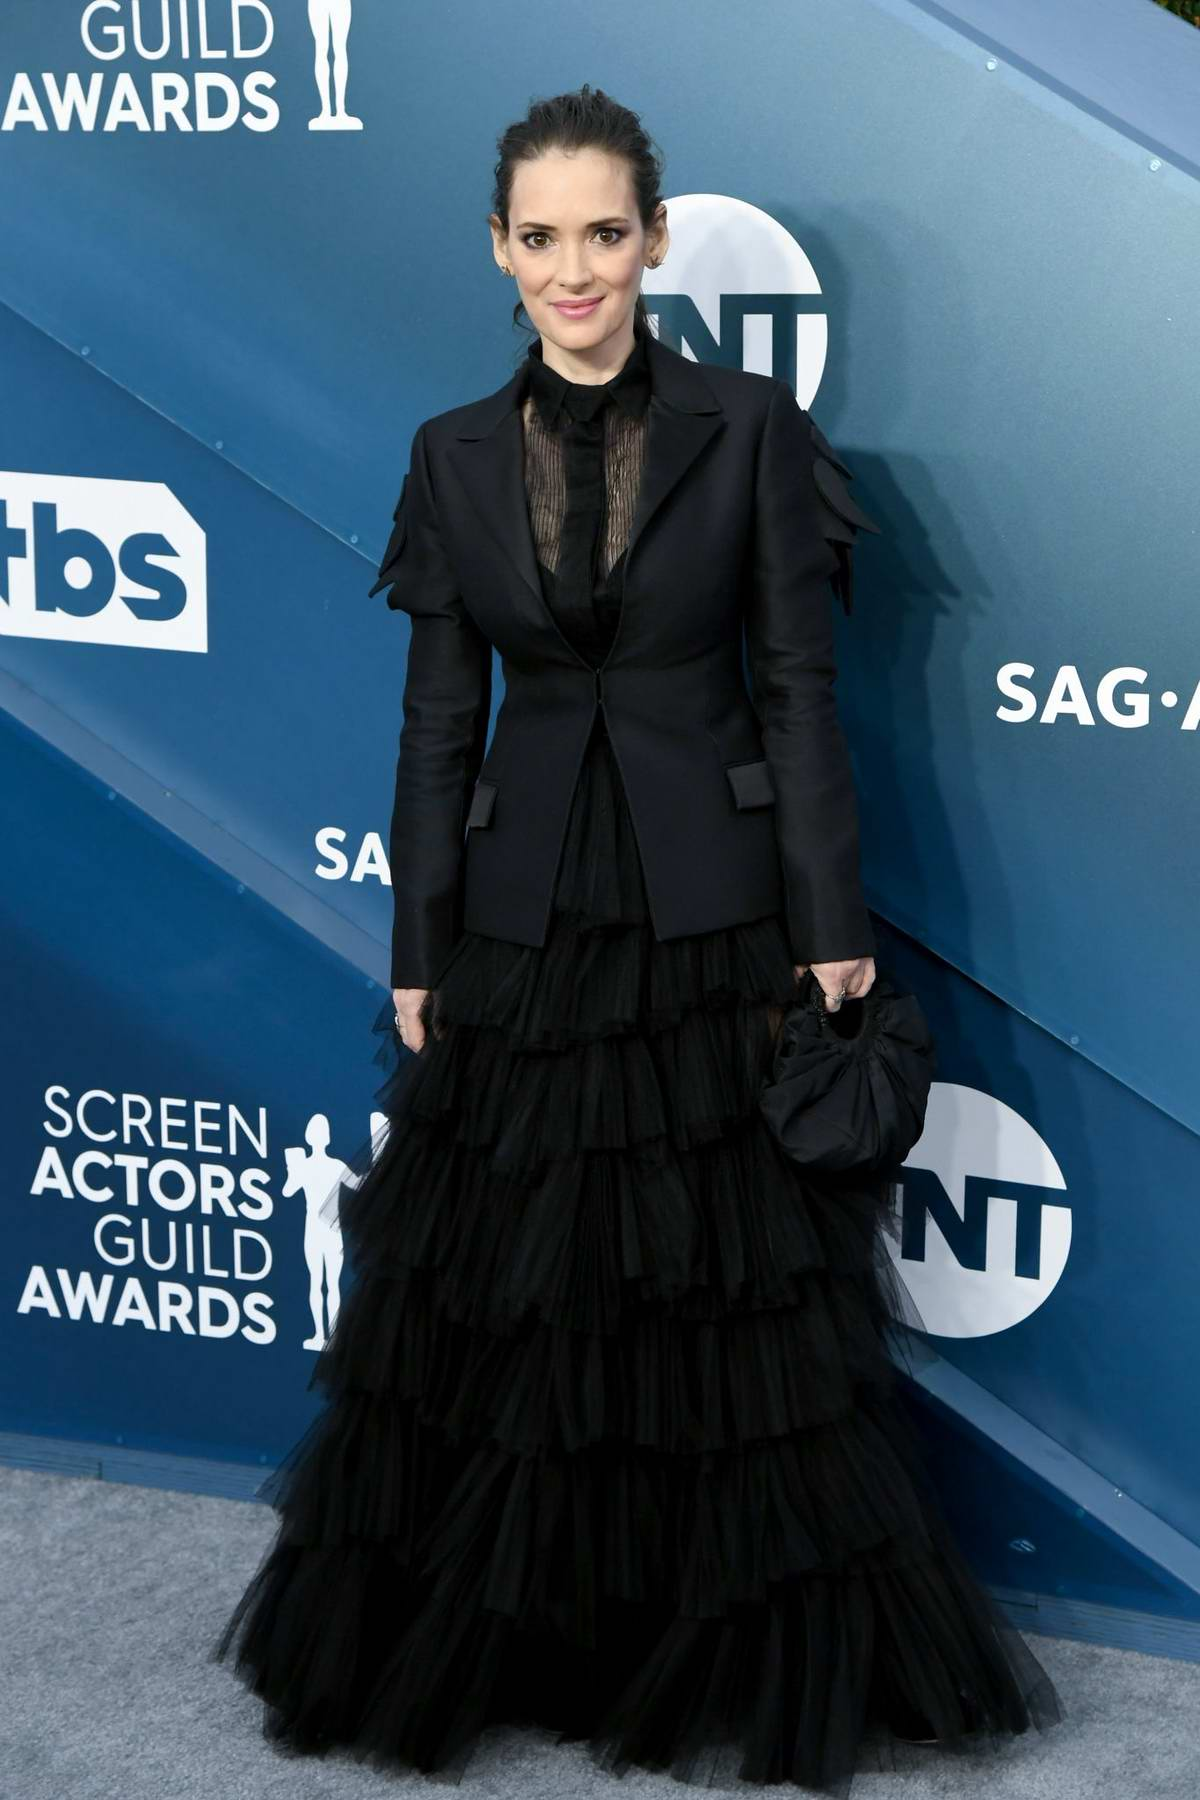 Winona Ryder attends the 26th Annual Screen Actors Guild Awards at the Shrine Auditorium in Los Angeles